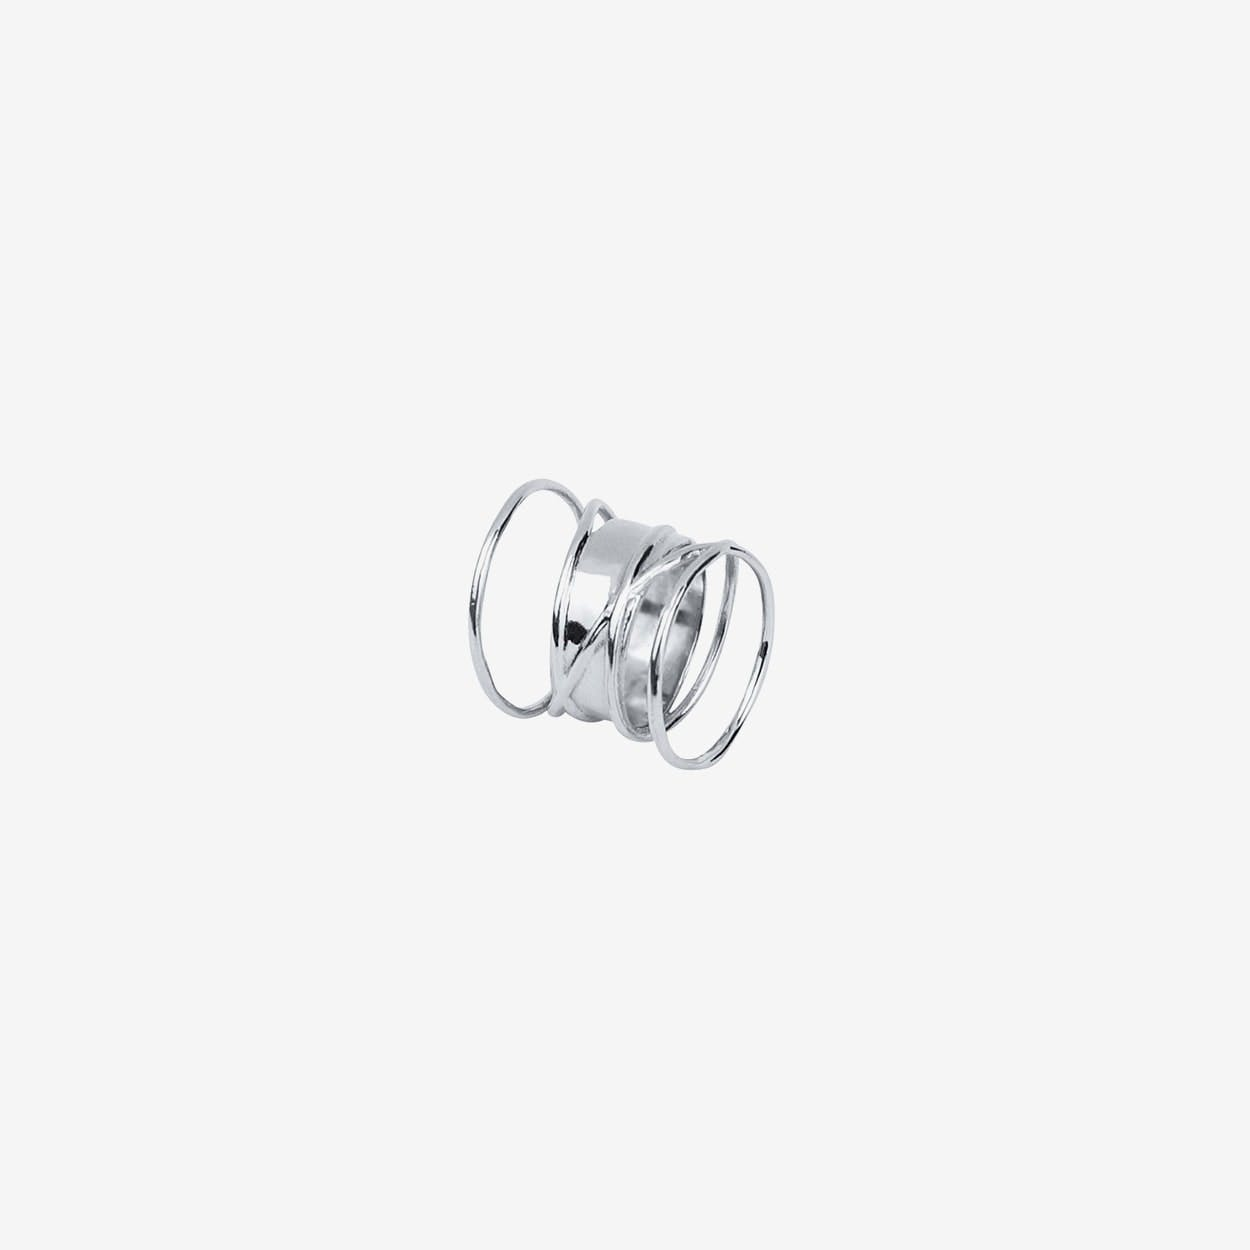 Hypnotize Ring in Silver - Majune